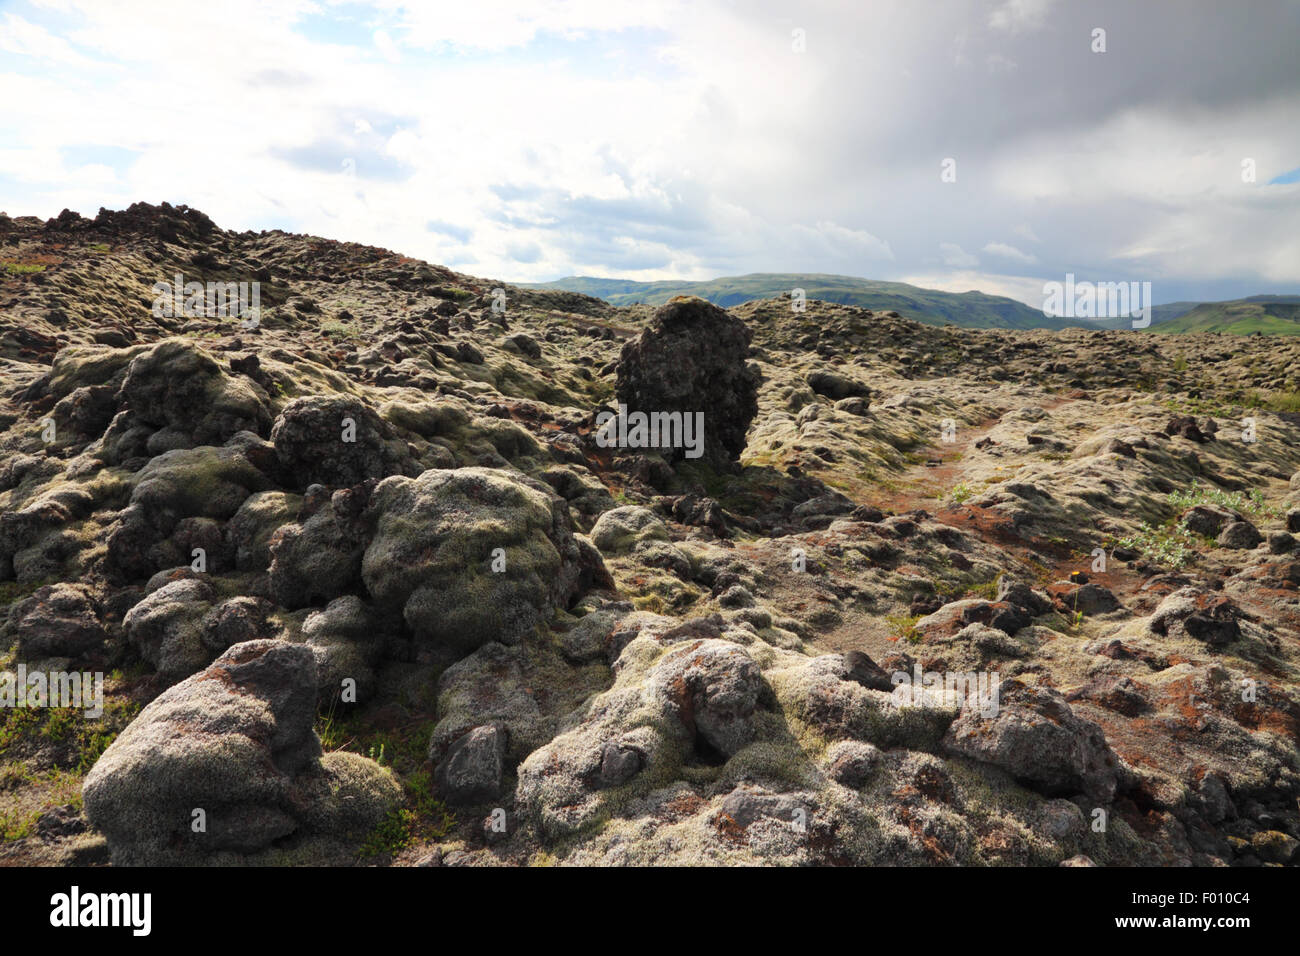 A weathered lava field. - Stock Image